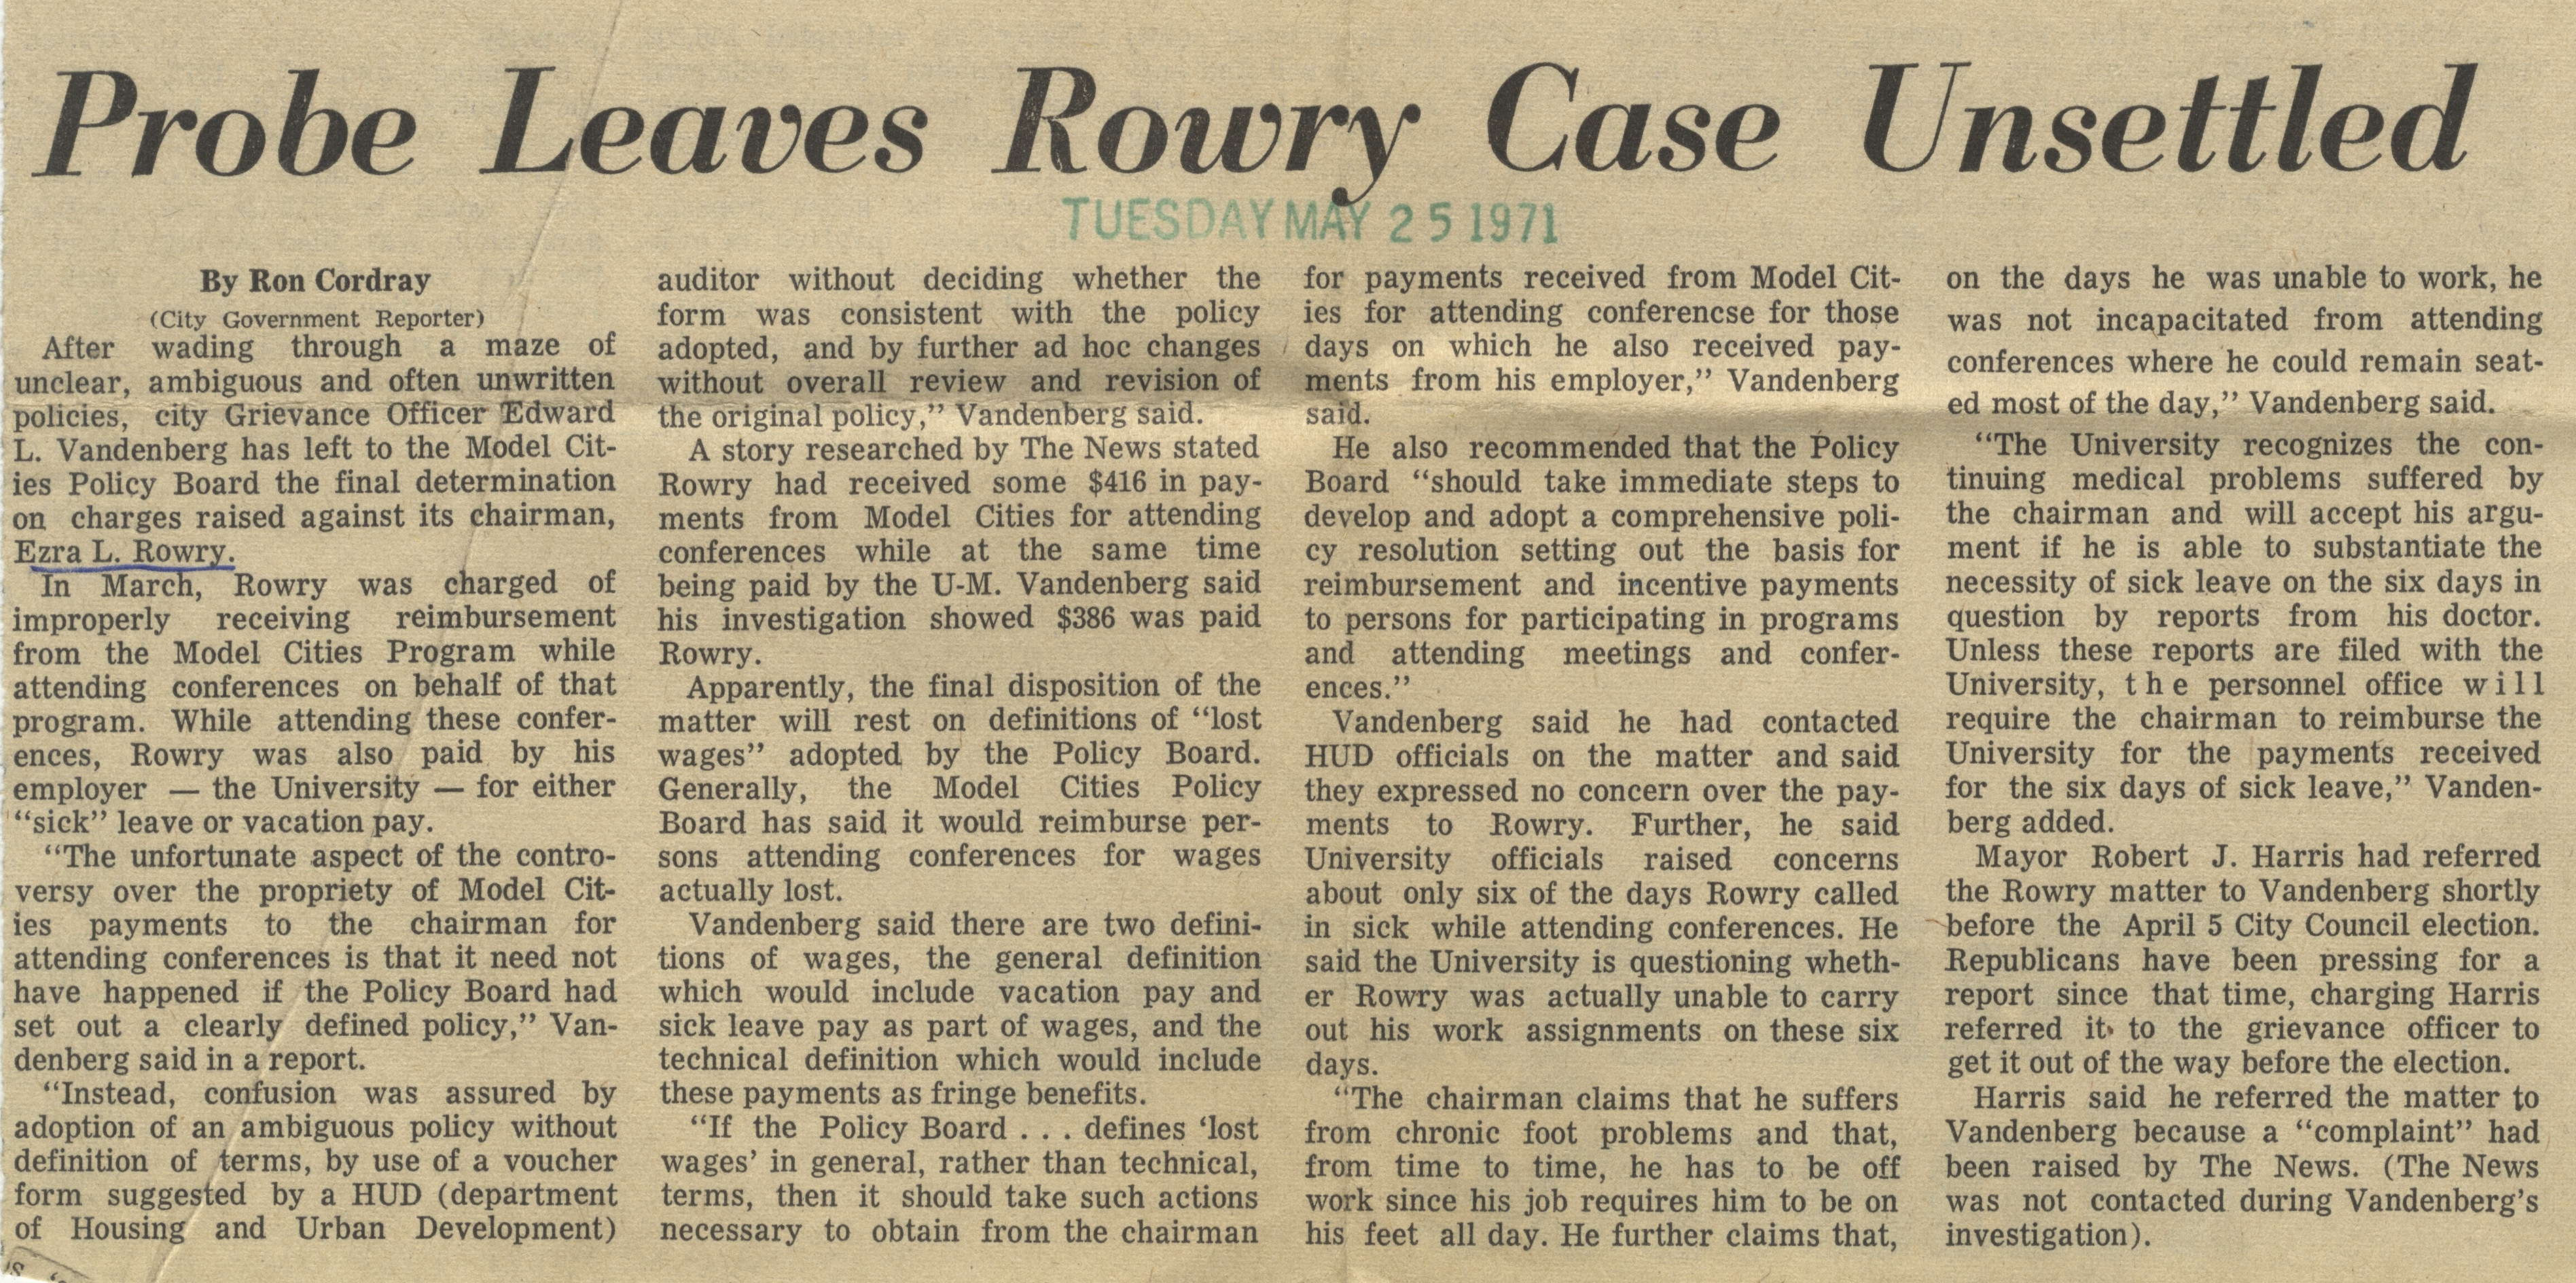 Probe Leaves Rowry Case Unsettled image